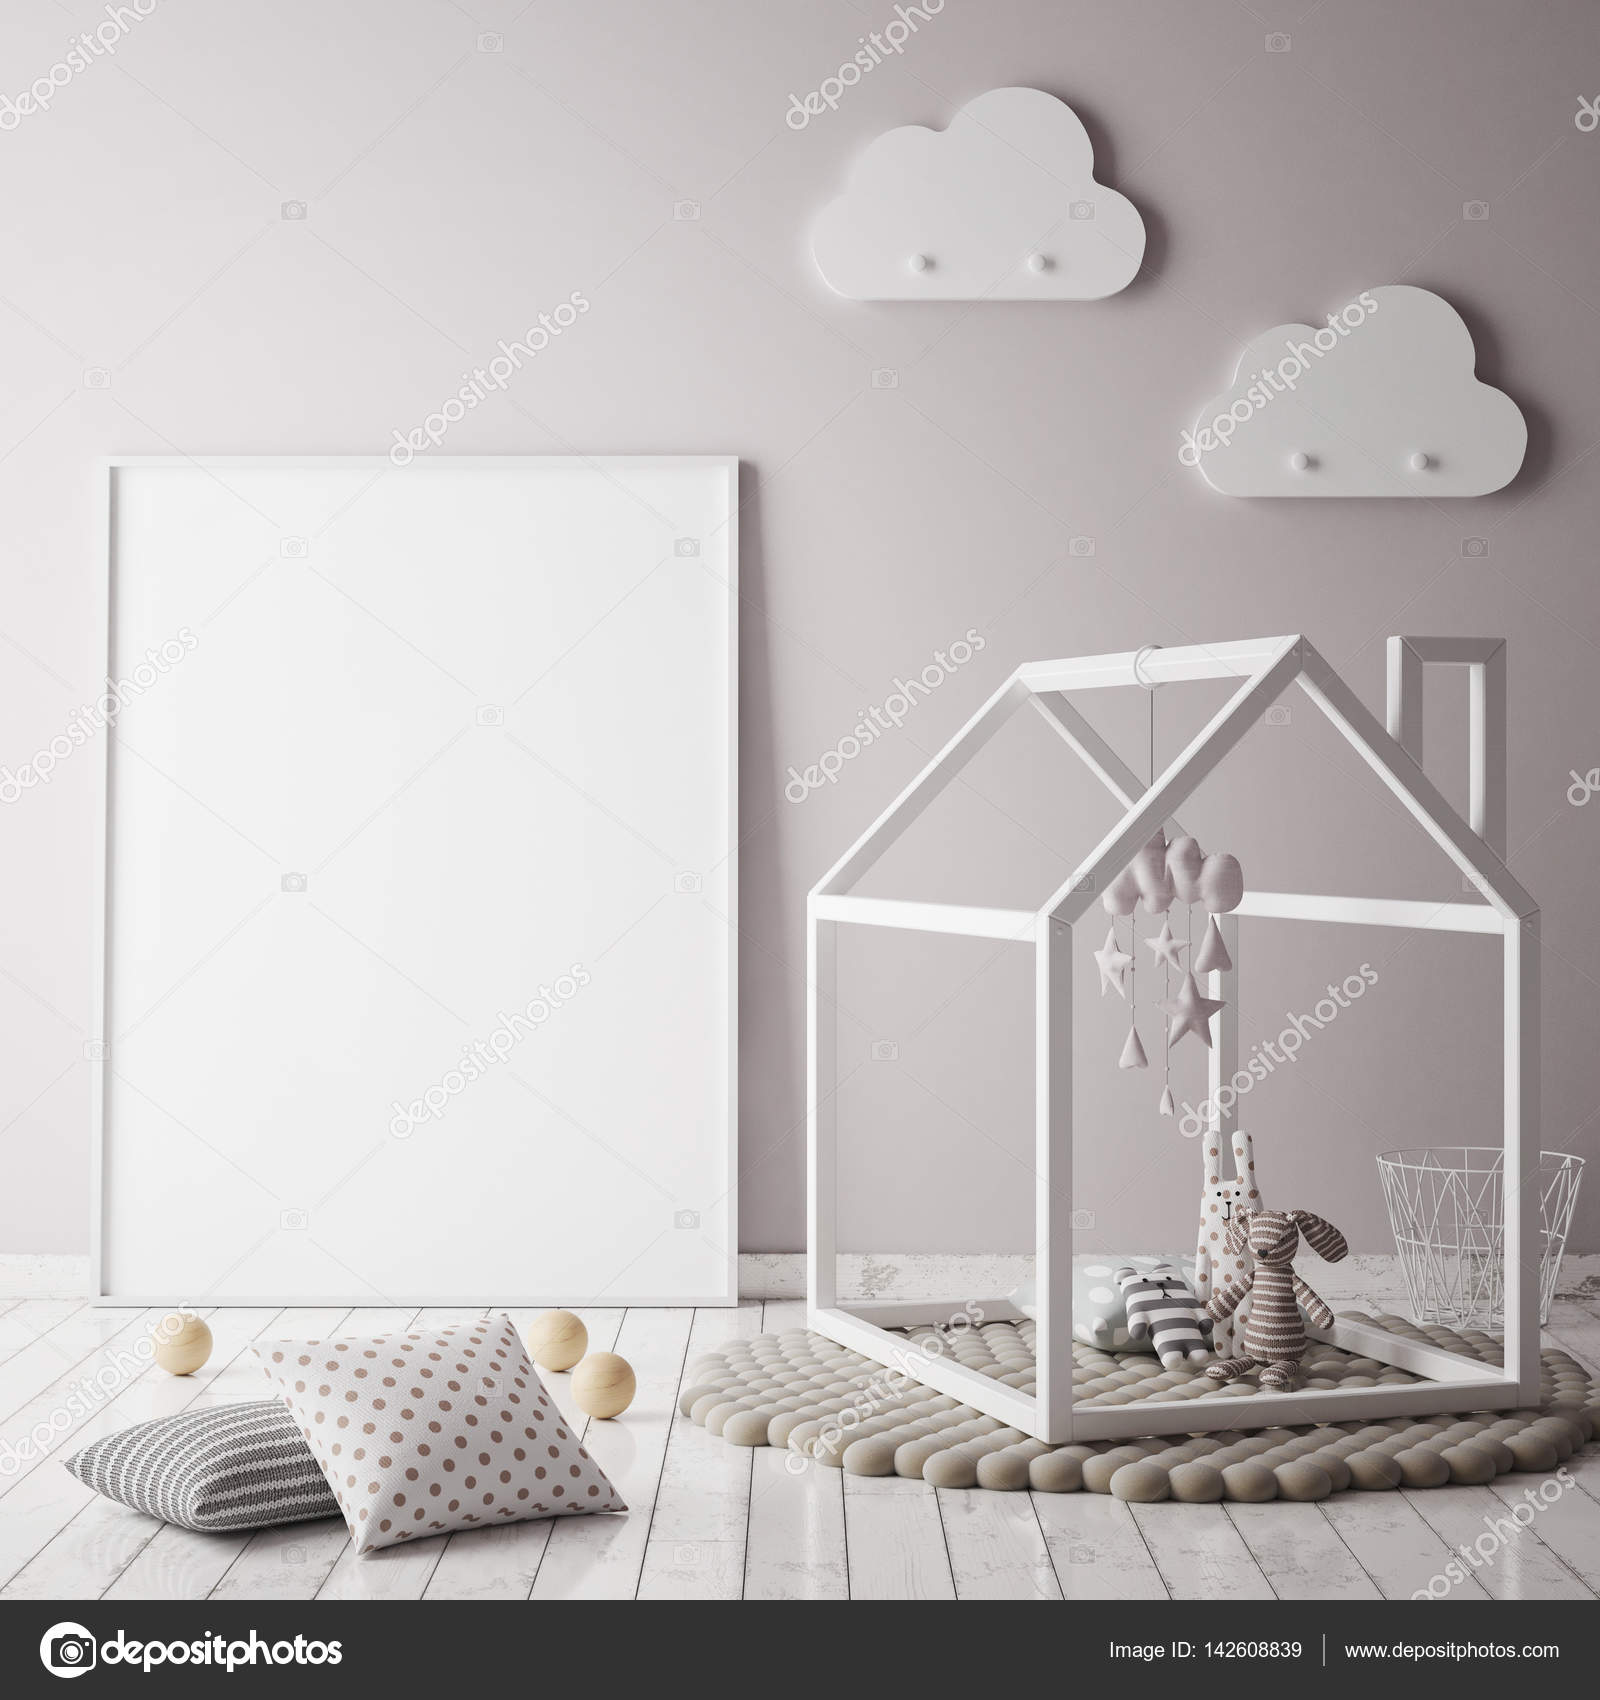 mock up posterrahmen im kinderzimmer skandinavischen stil innen hintergrund 3d render. Black Bedroom Furniture Sets. Home Design Ideas